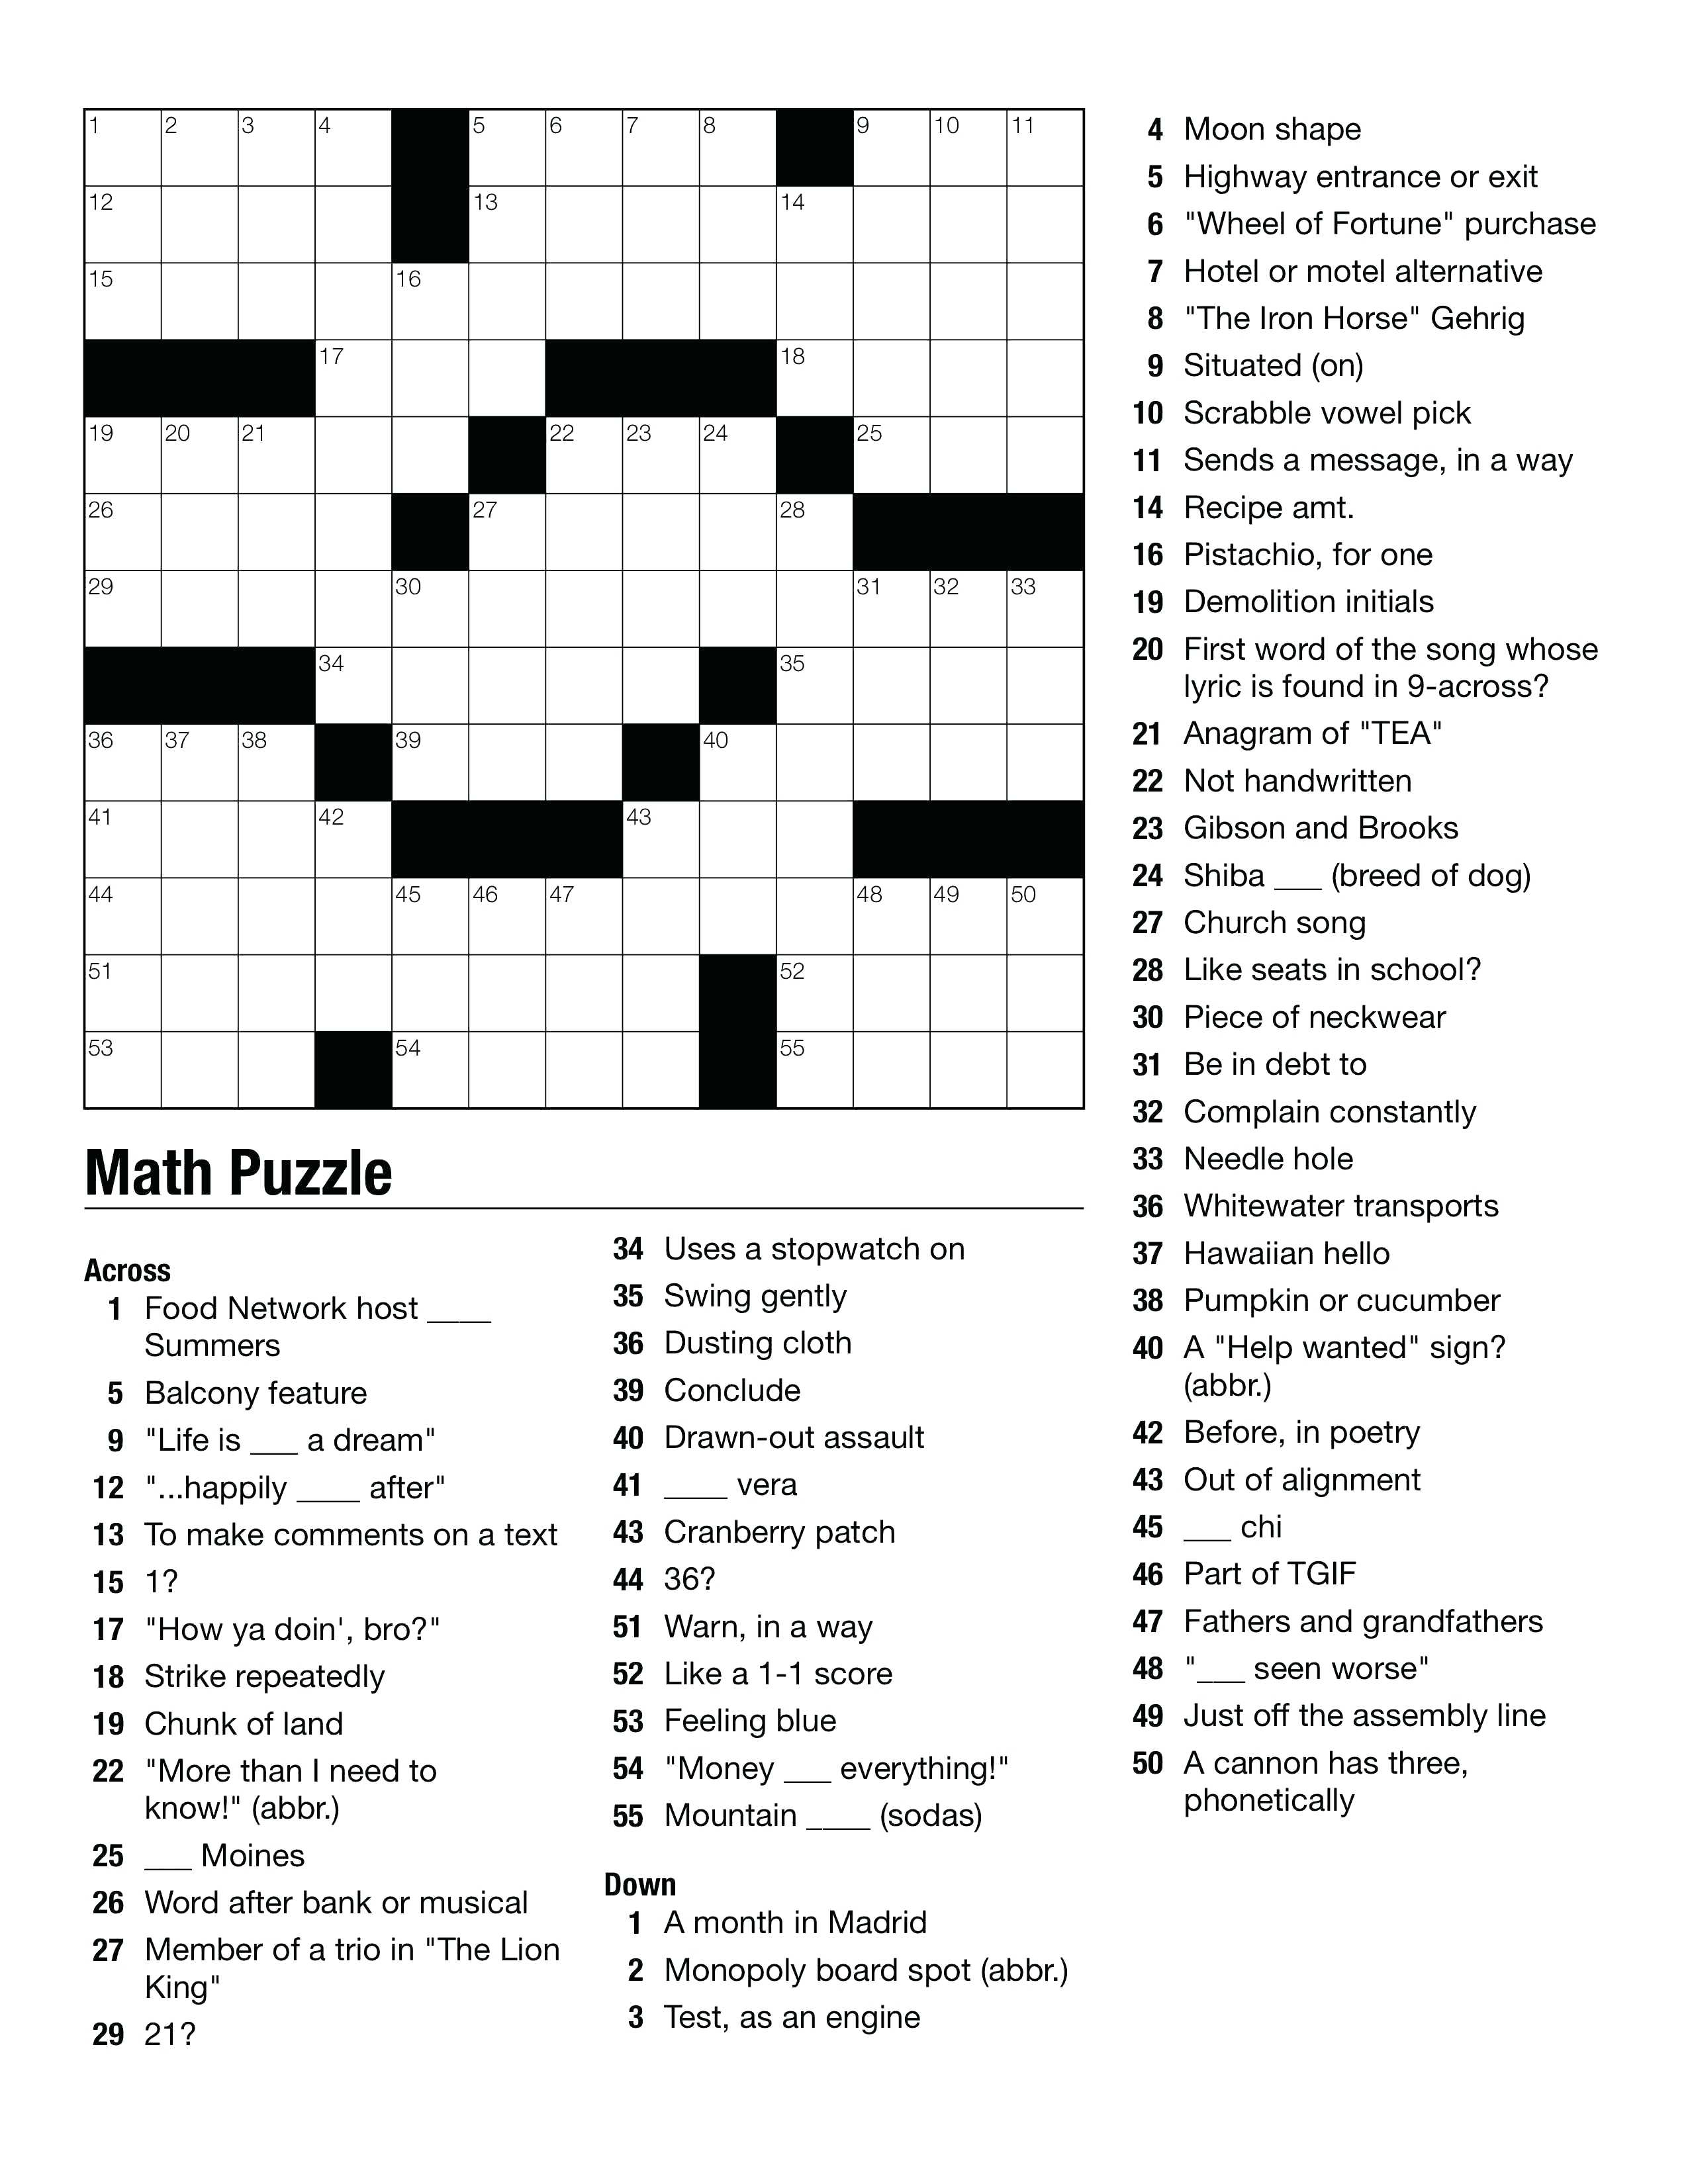 Geometry Puzzles Math – Upskill.club - Printable Crossword Puzzles For Middle School Students